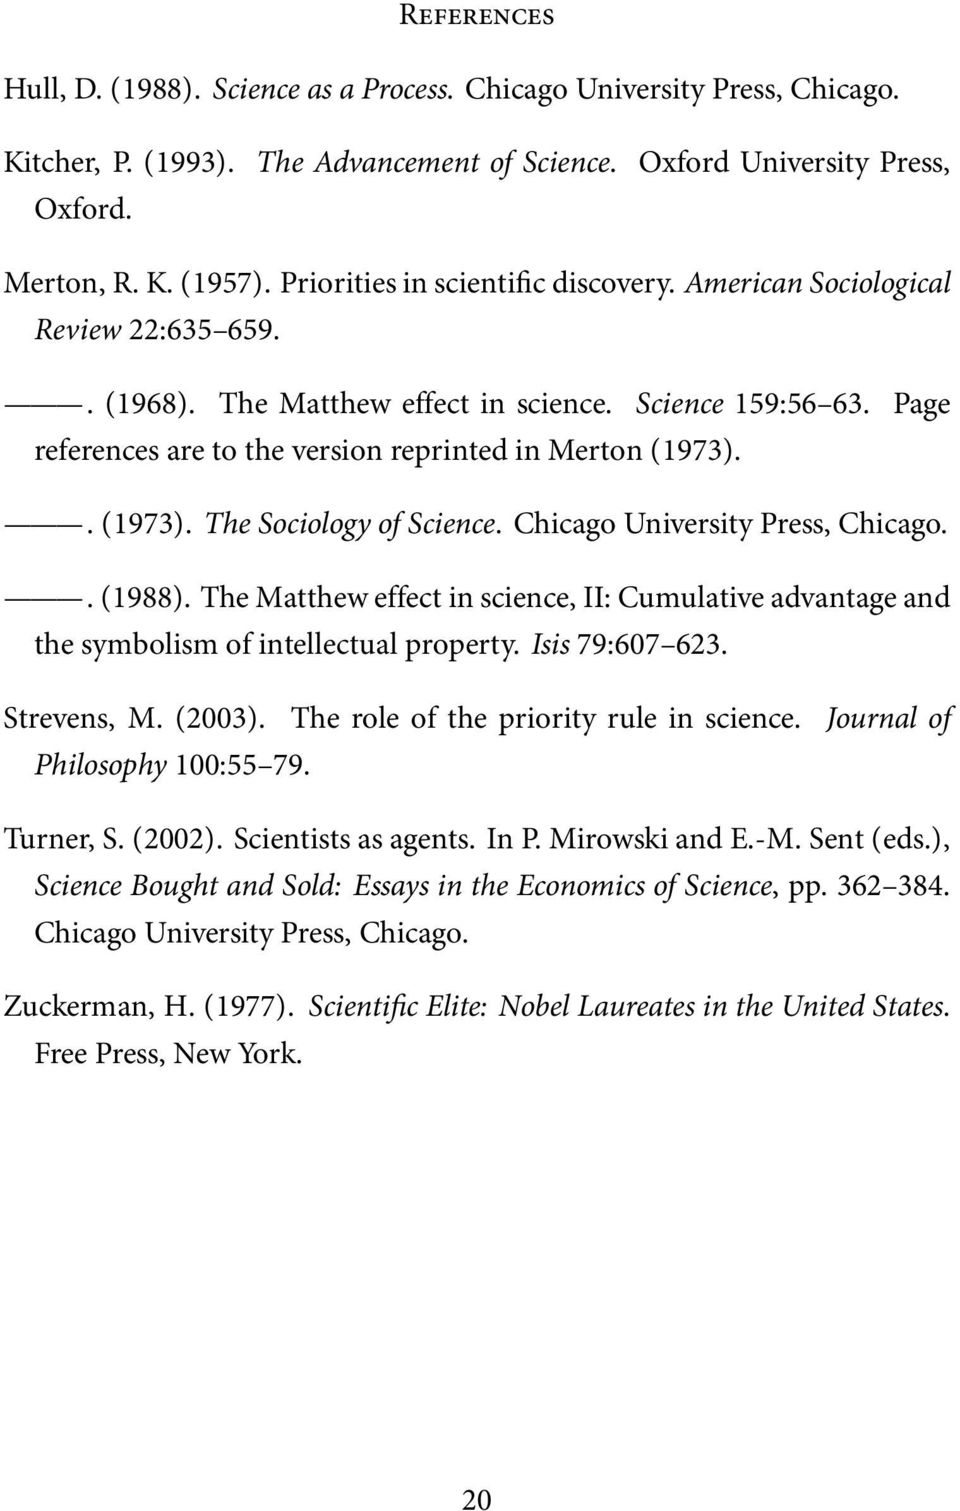 . (1973). The Sociology of Science. Chicago University Press, Chicago.. (1988). The Matthew effect in science, II: Cumulative advantage and the symbolism of intellectual property. Isis 79:607 623.